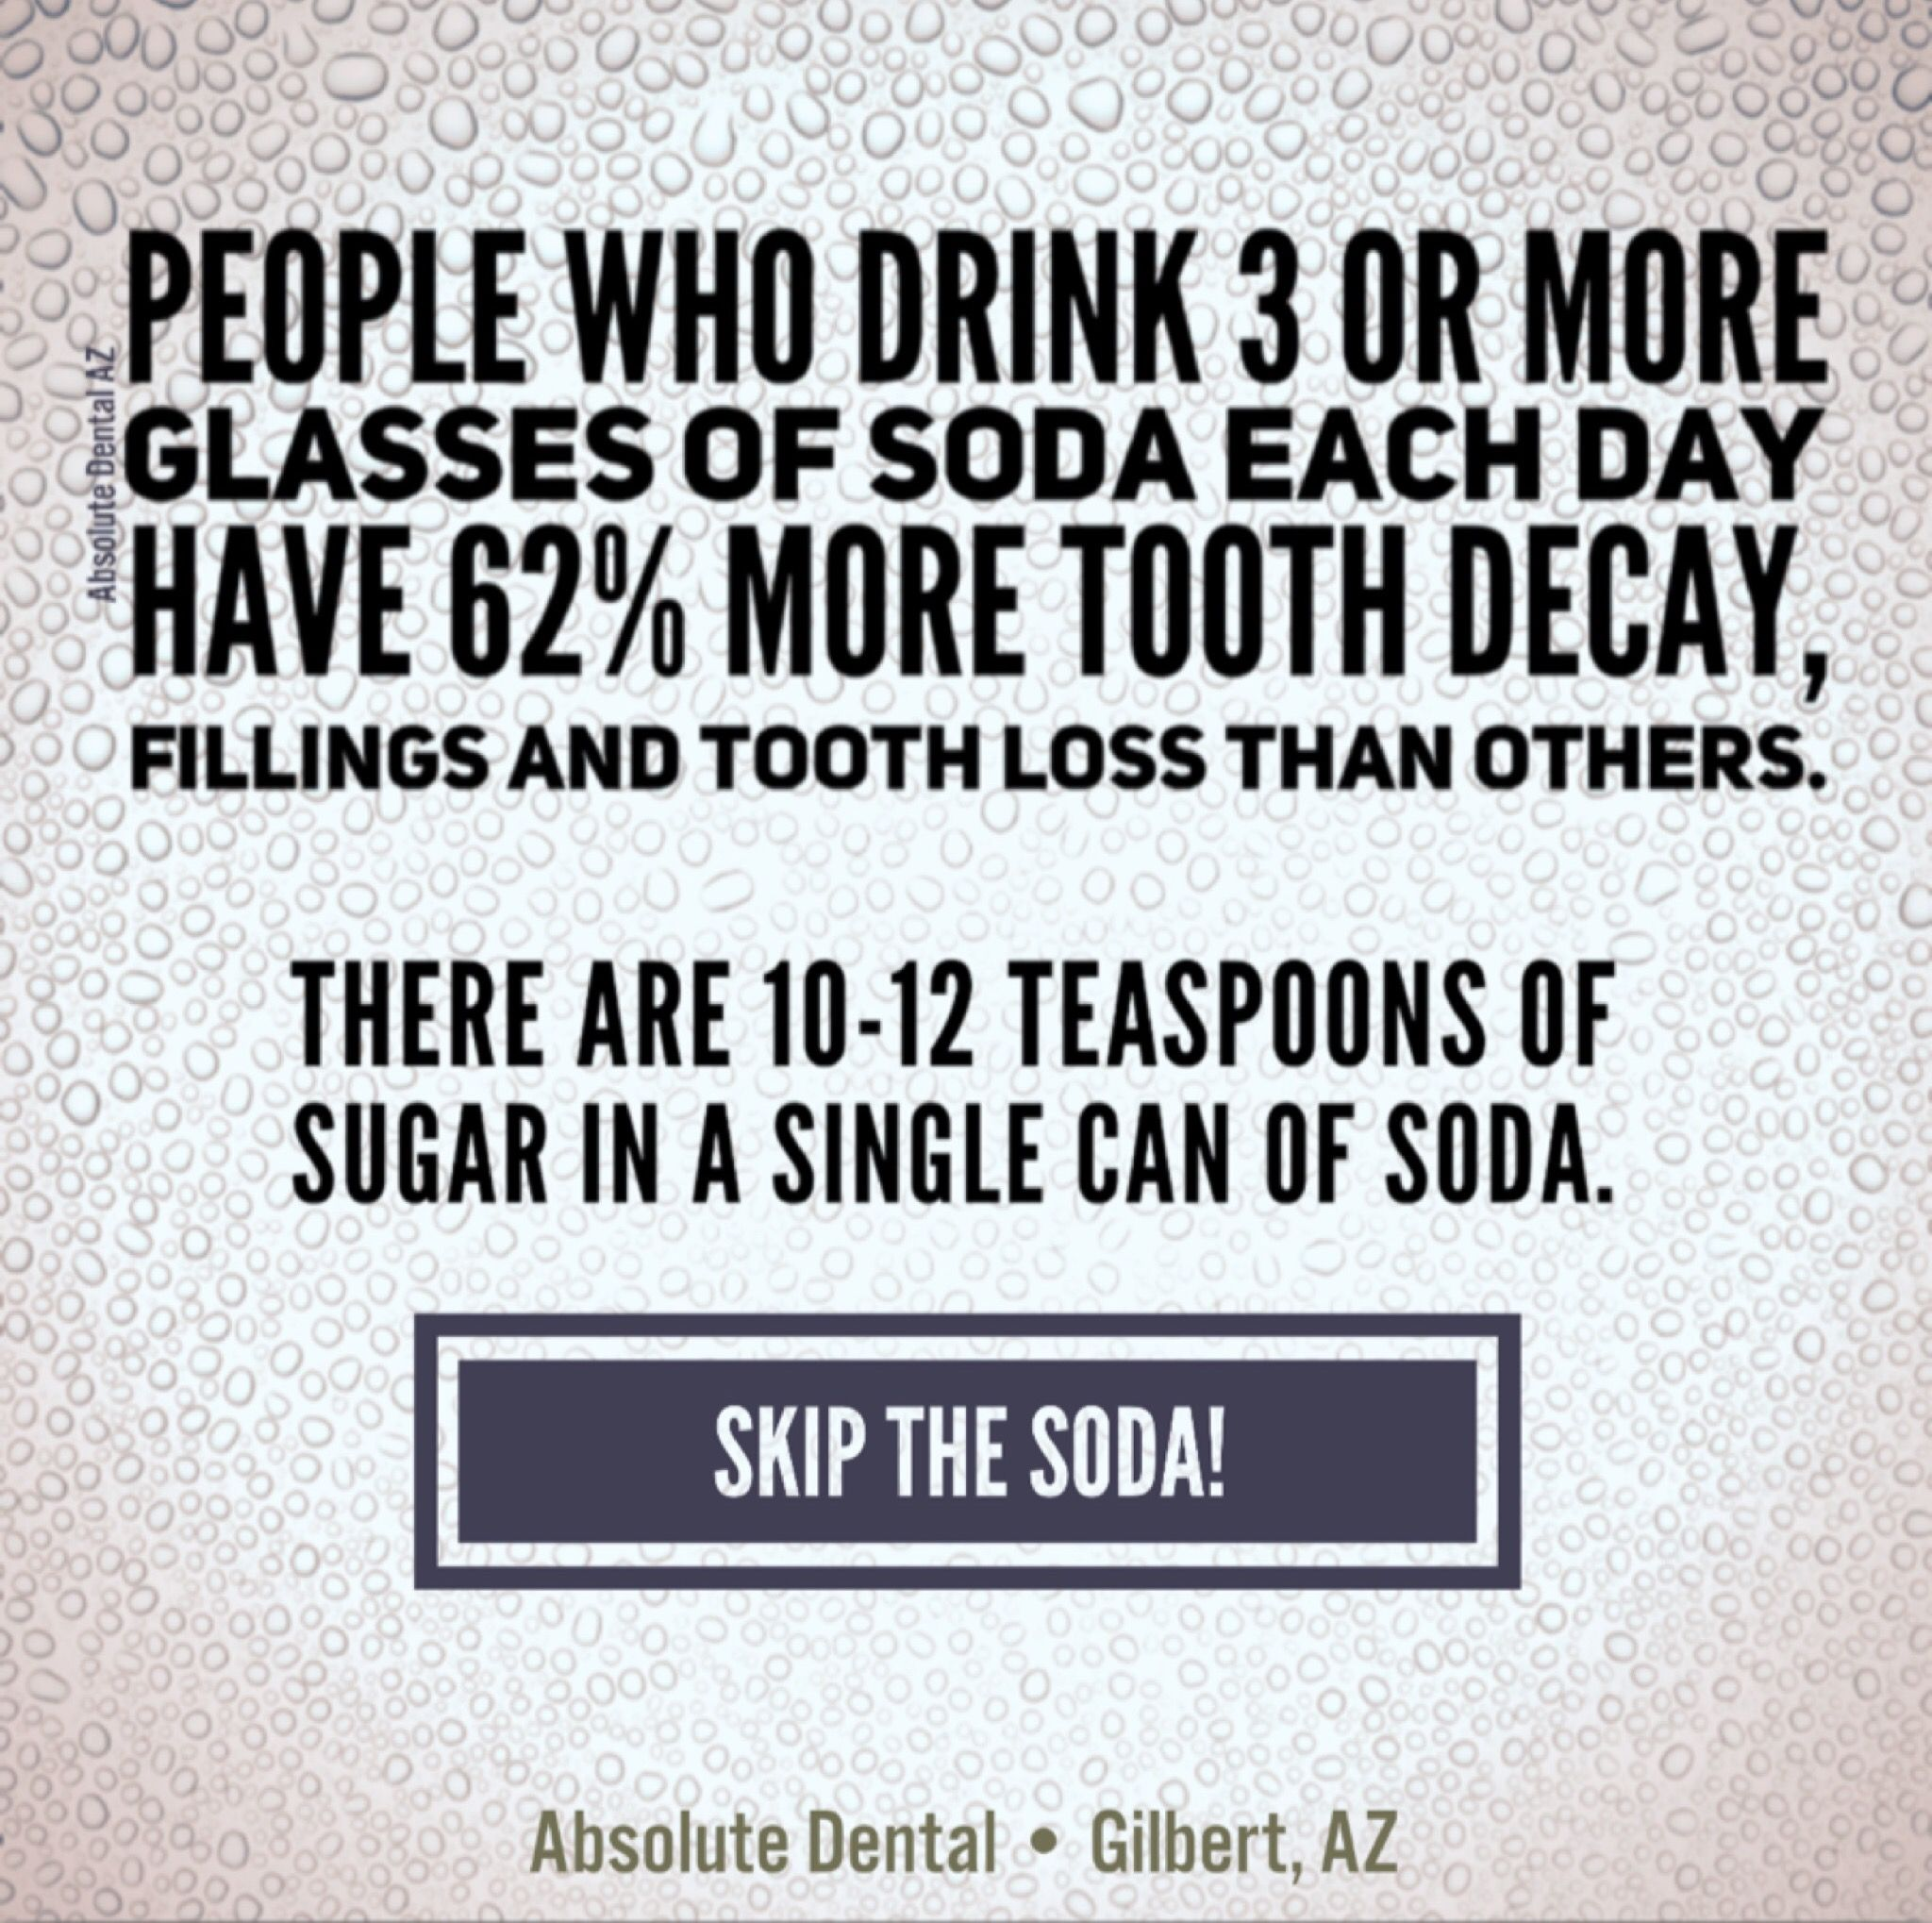 Pin by Absolute Dental on Good to Know Tooth decay, Good